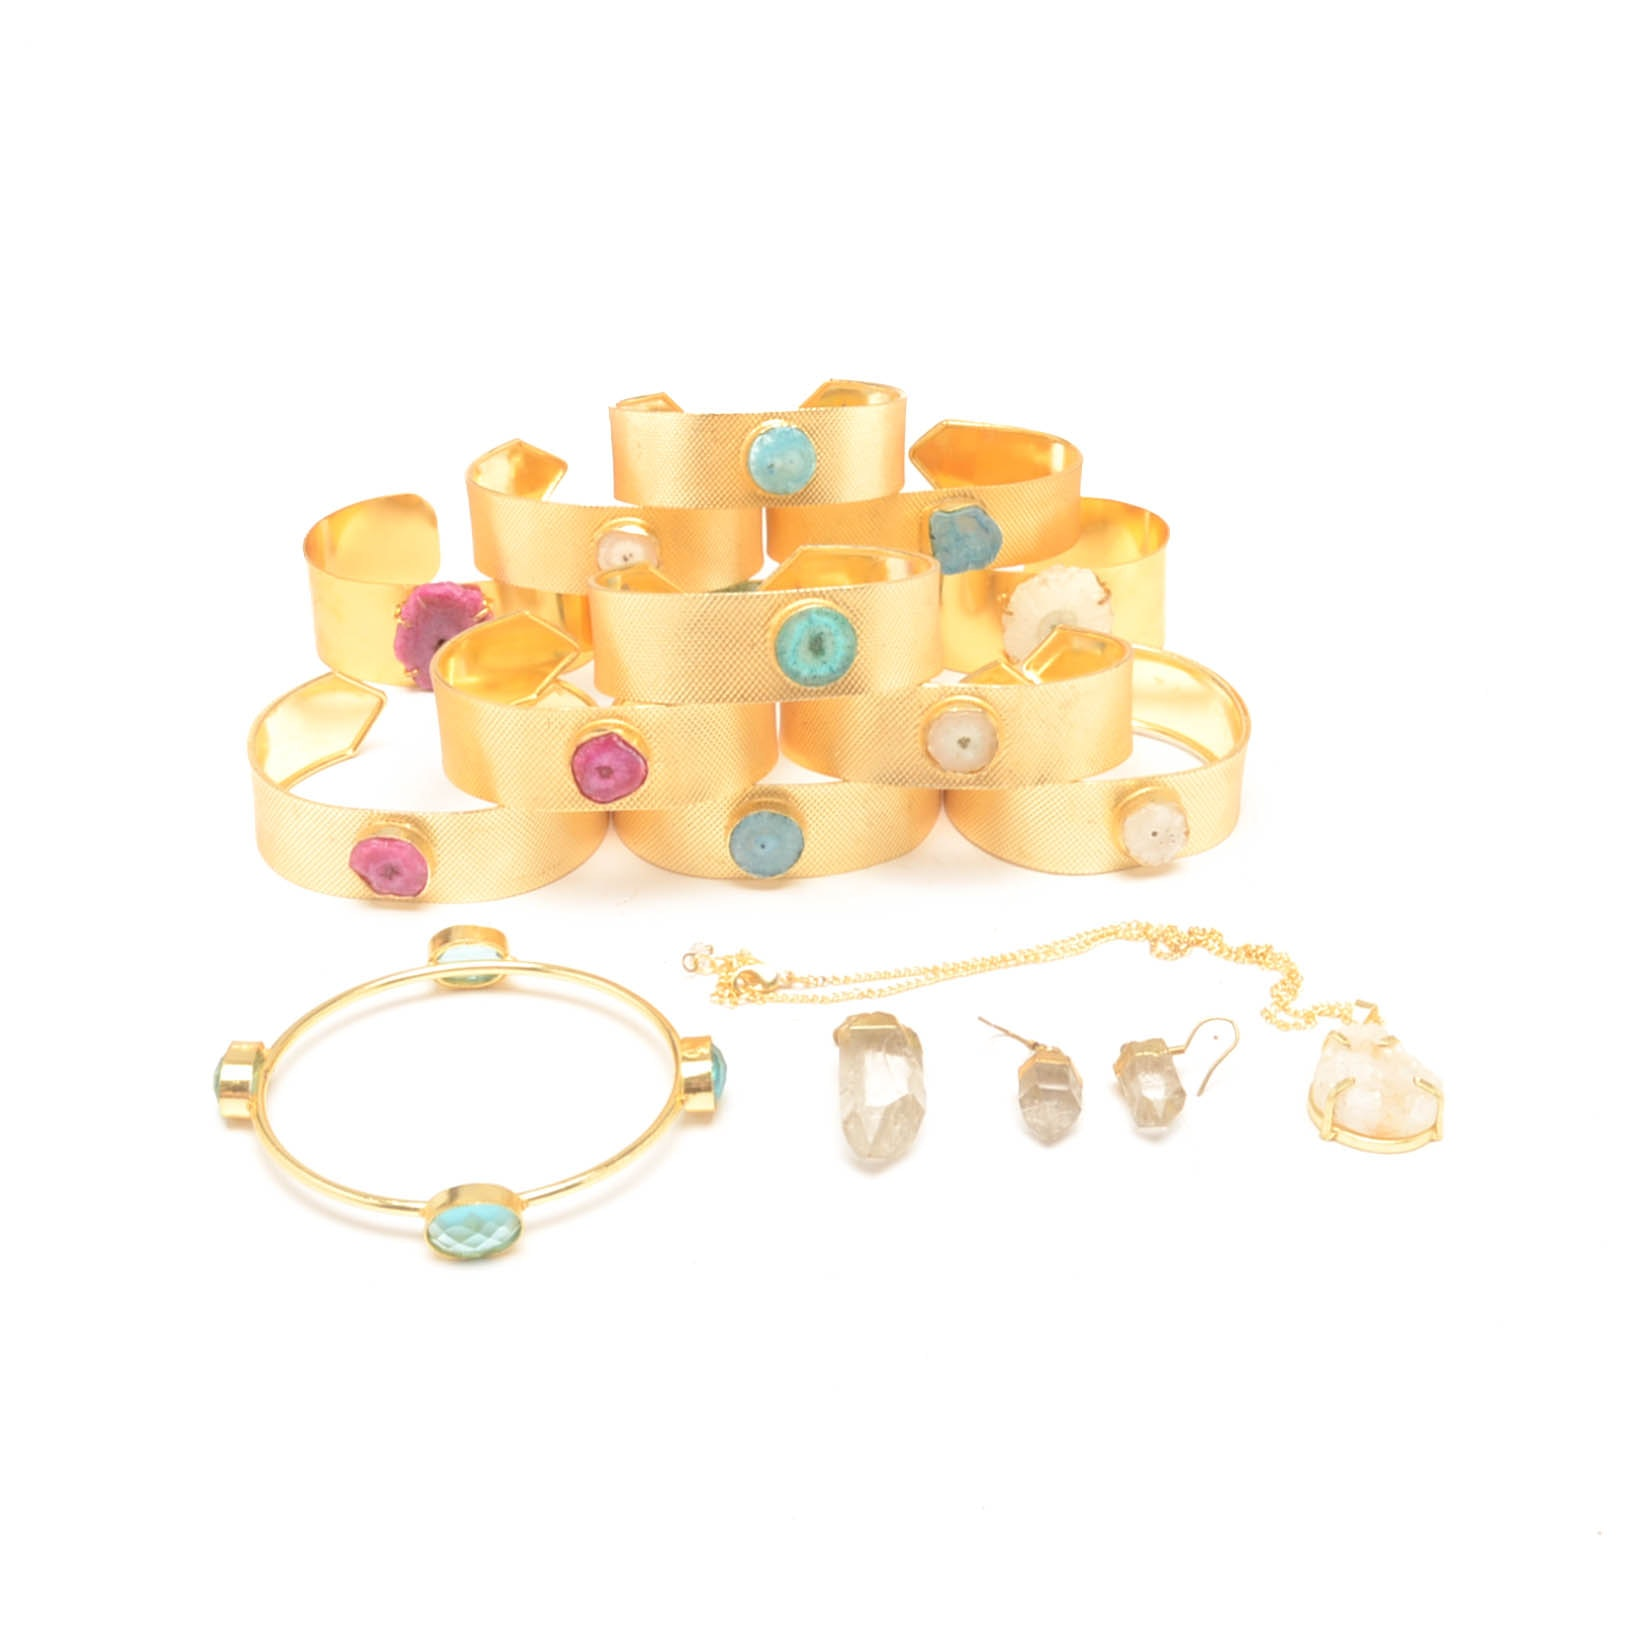 Sixteen Pieces of Gold Tone Jewelry With Natural Stones and Faceted Glass